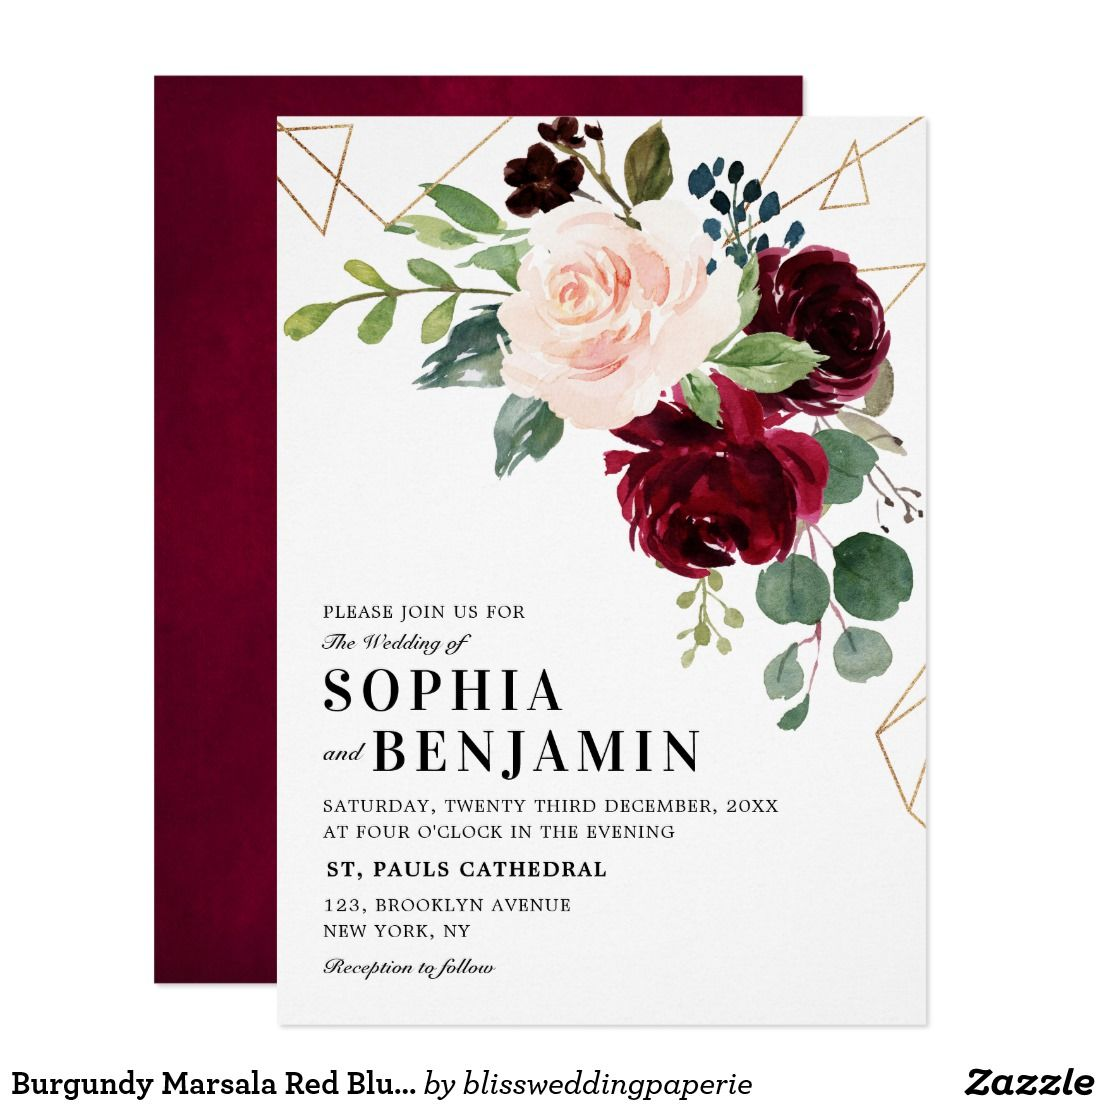 Red And Pink Wedding Invitations: Burgundy Marsala Red Blush Rose Geometric Floral